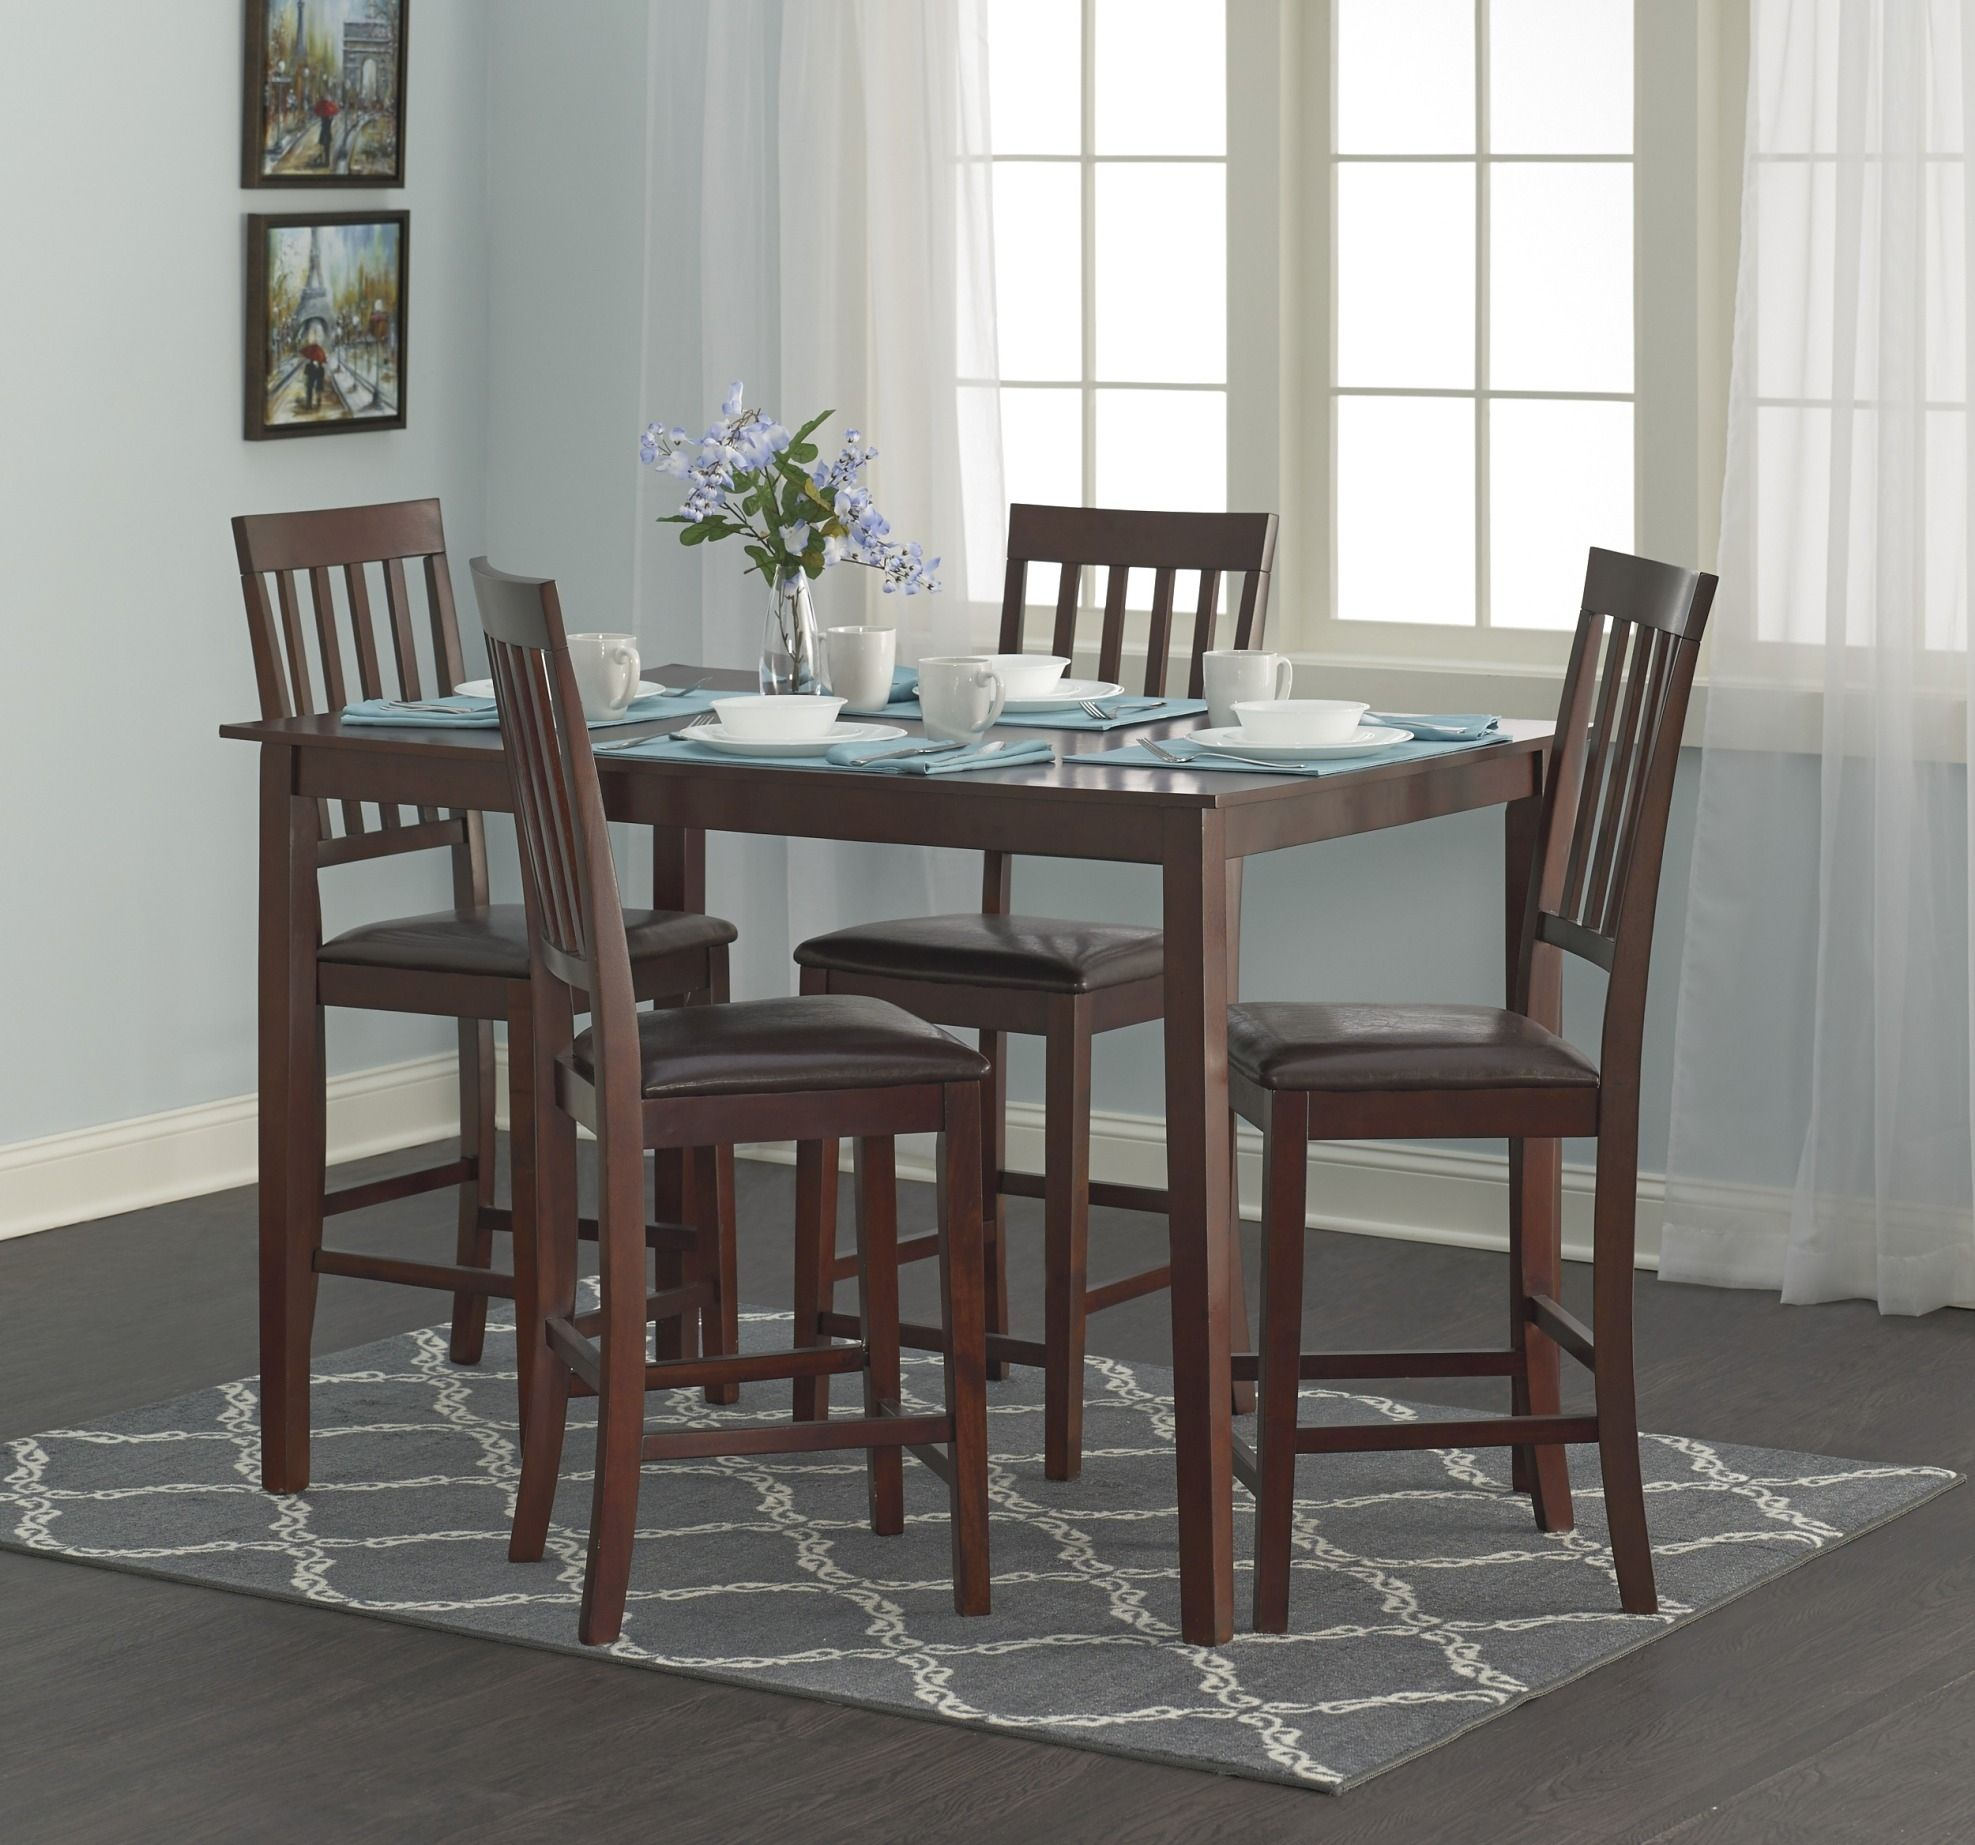 Round kitchen table sets kmart httpmanageditservicesatlanta round kitchen table sets kmart workwithnaturefo